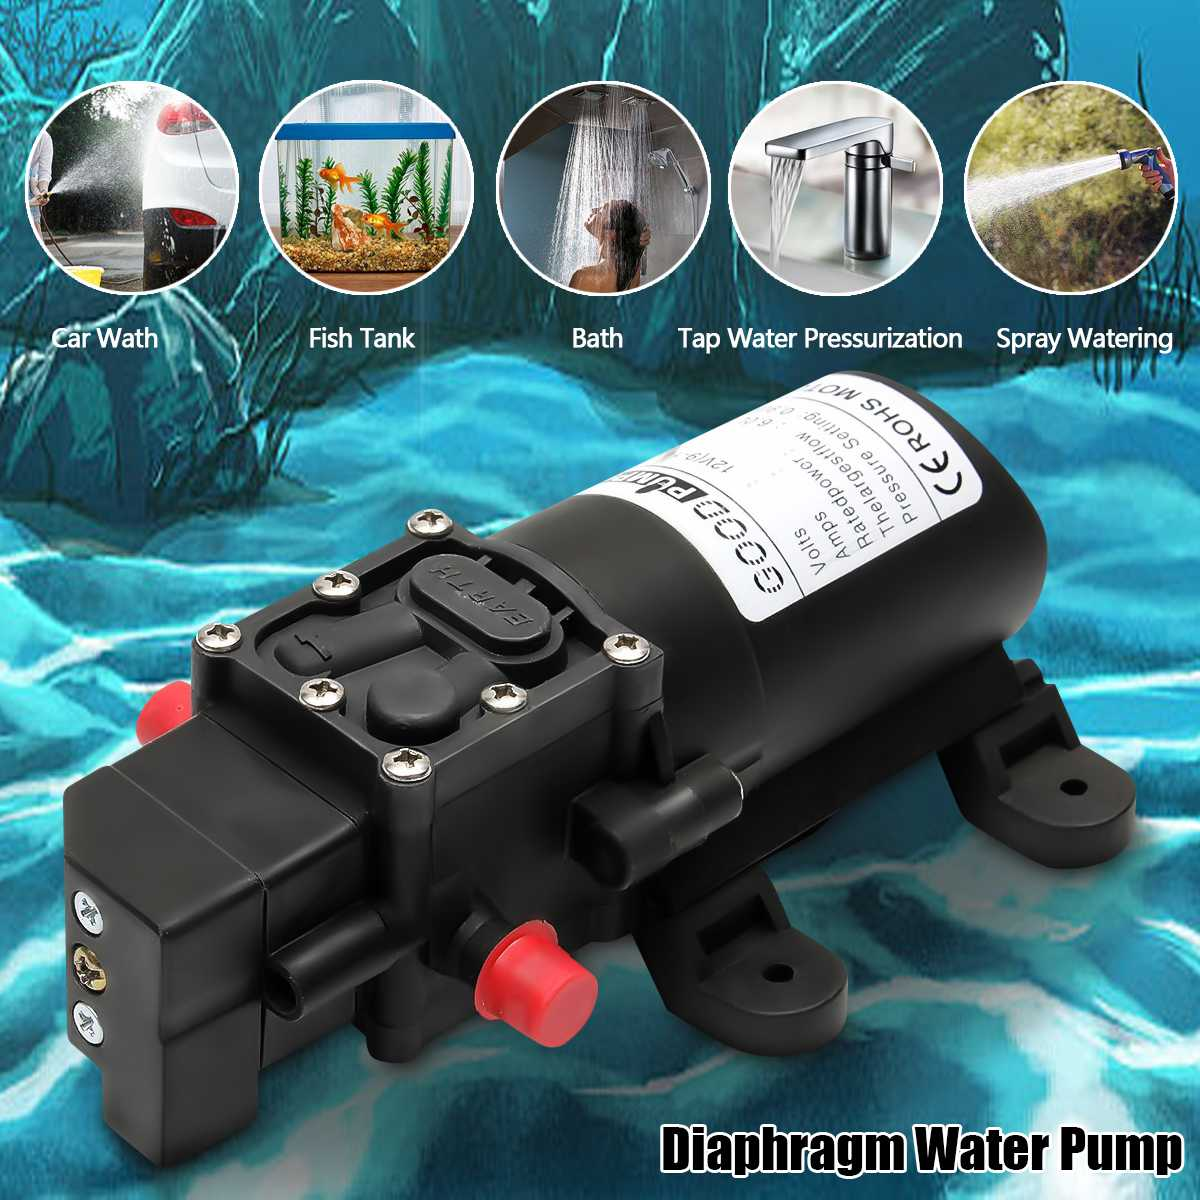 Durable DC 12V 130PSI Agricultural Electric Water Pump Black Micro High Pressure Diaphragm Water Sprayer Car Wash 12 V image